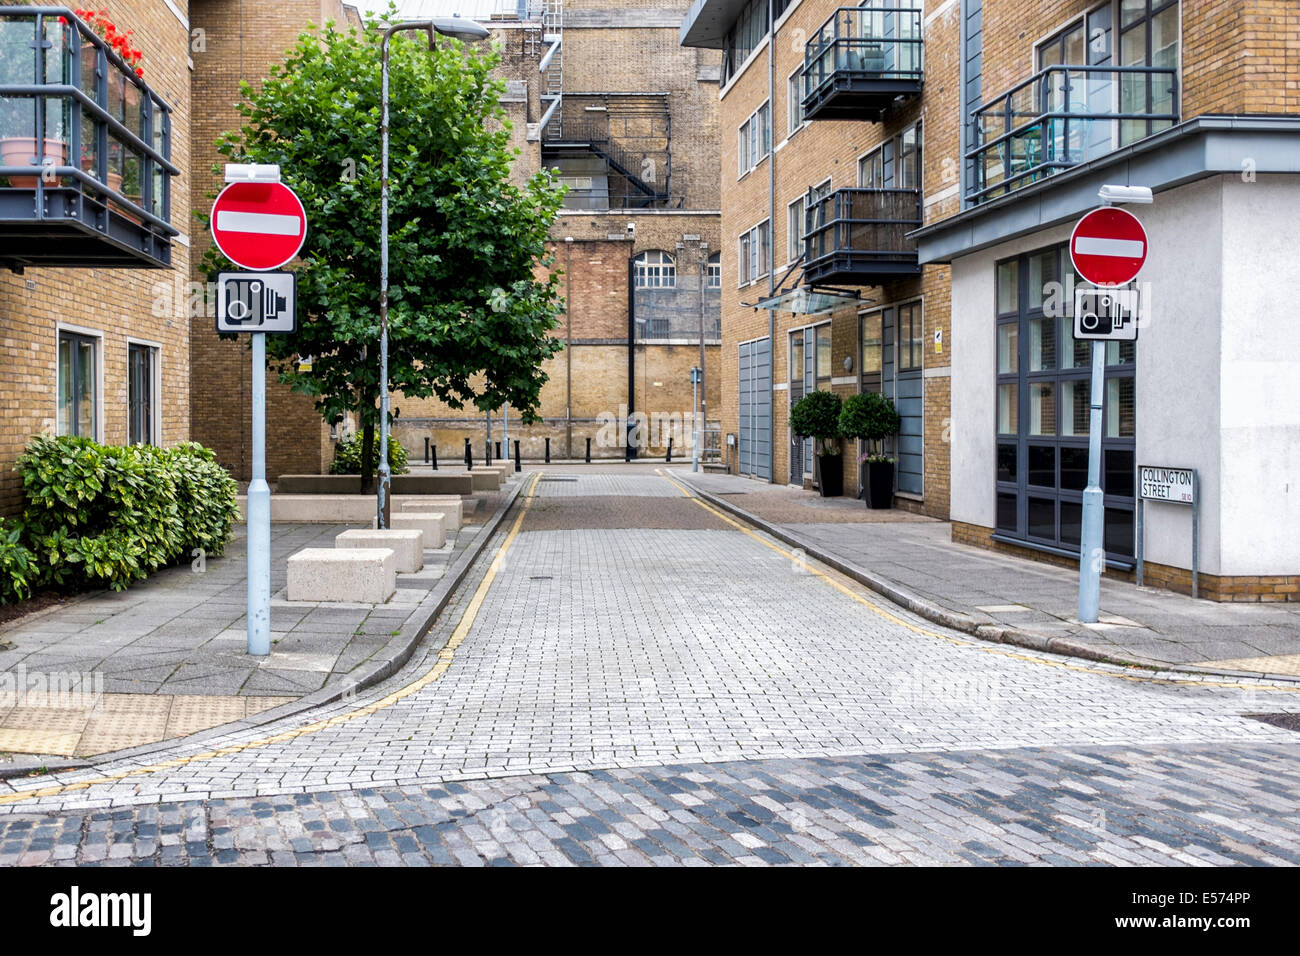 No entry and Camera CCTV signs in Greenwich street, London, UK - Stock Image